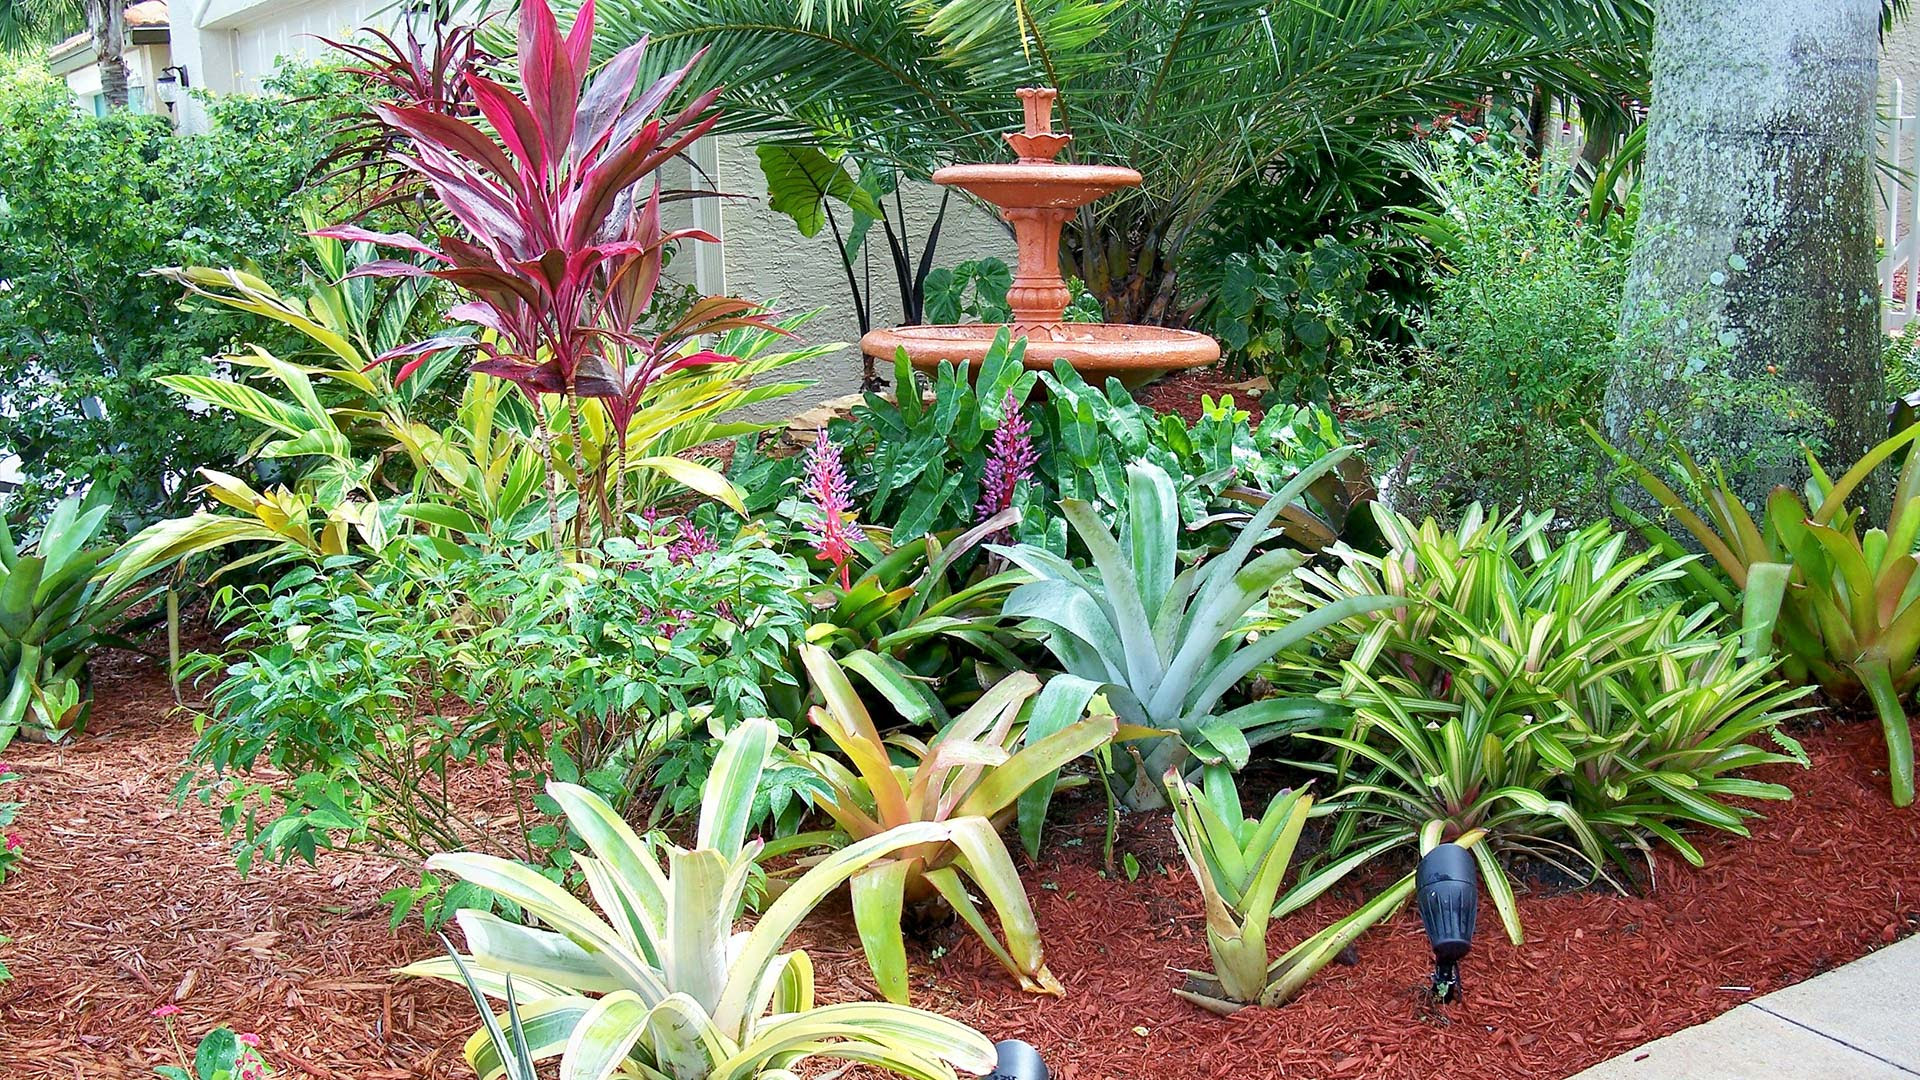 Services Boynton Beach Landscape Design Stone Borders And Landscaper